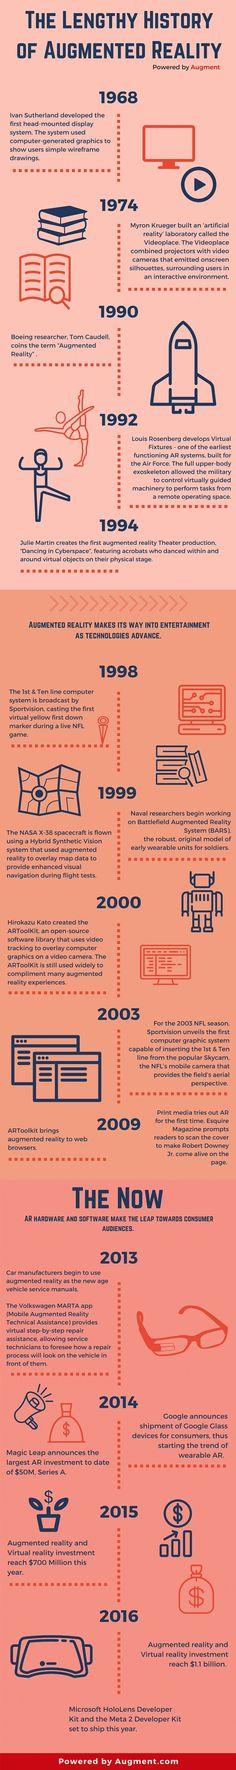 The History of Augmented Reality